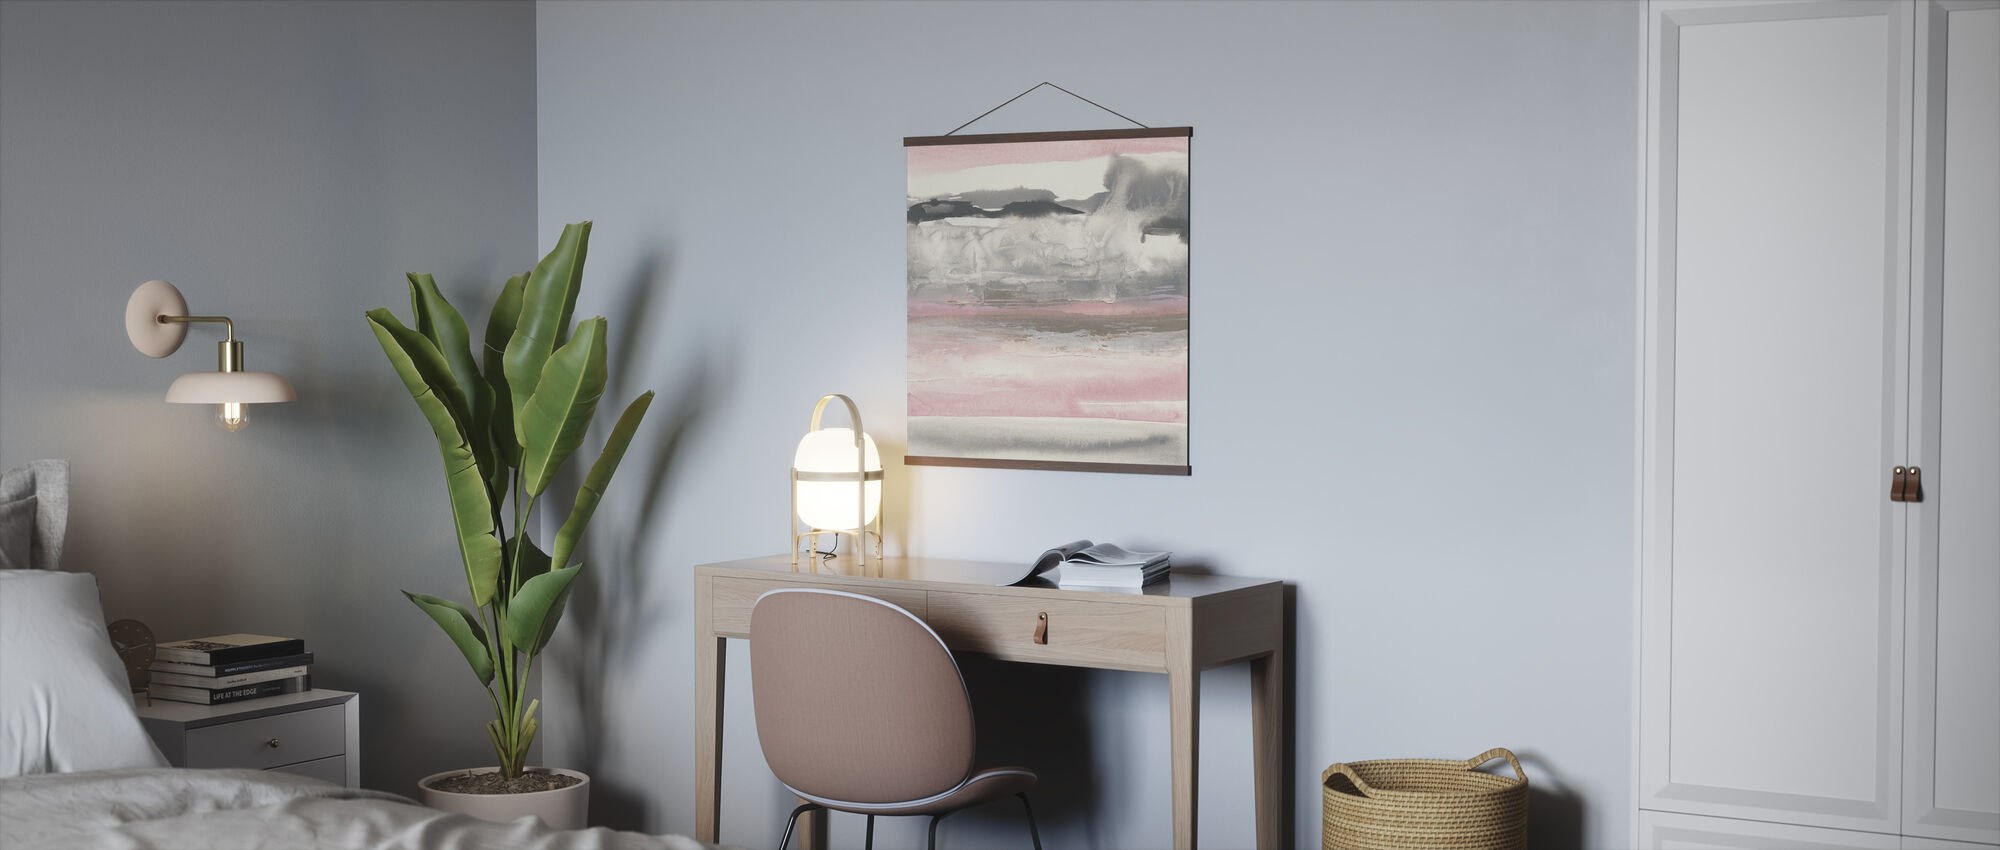 Charcoal and Blush - Poster - Office